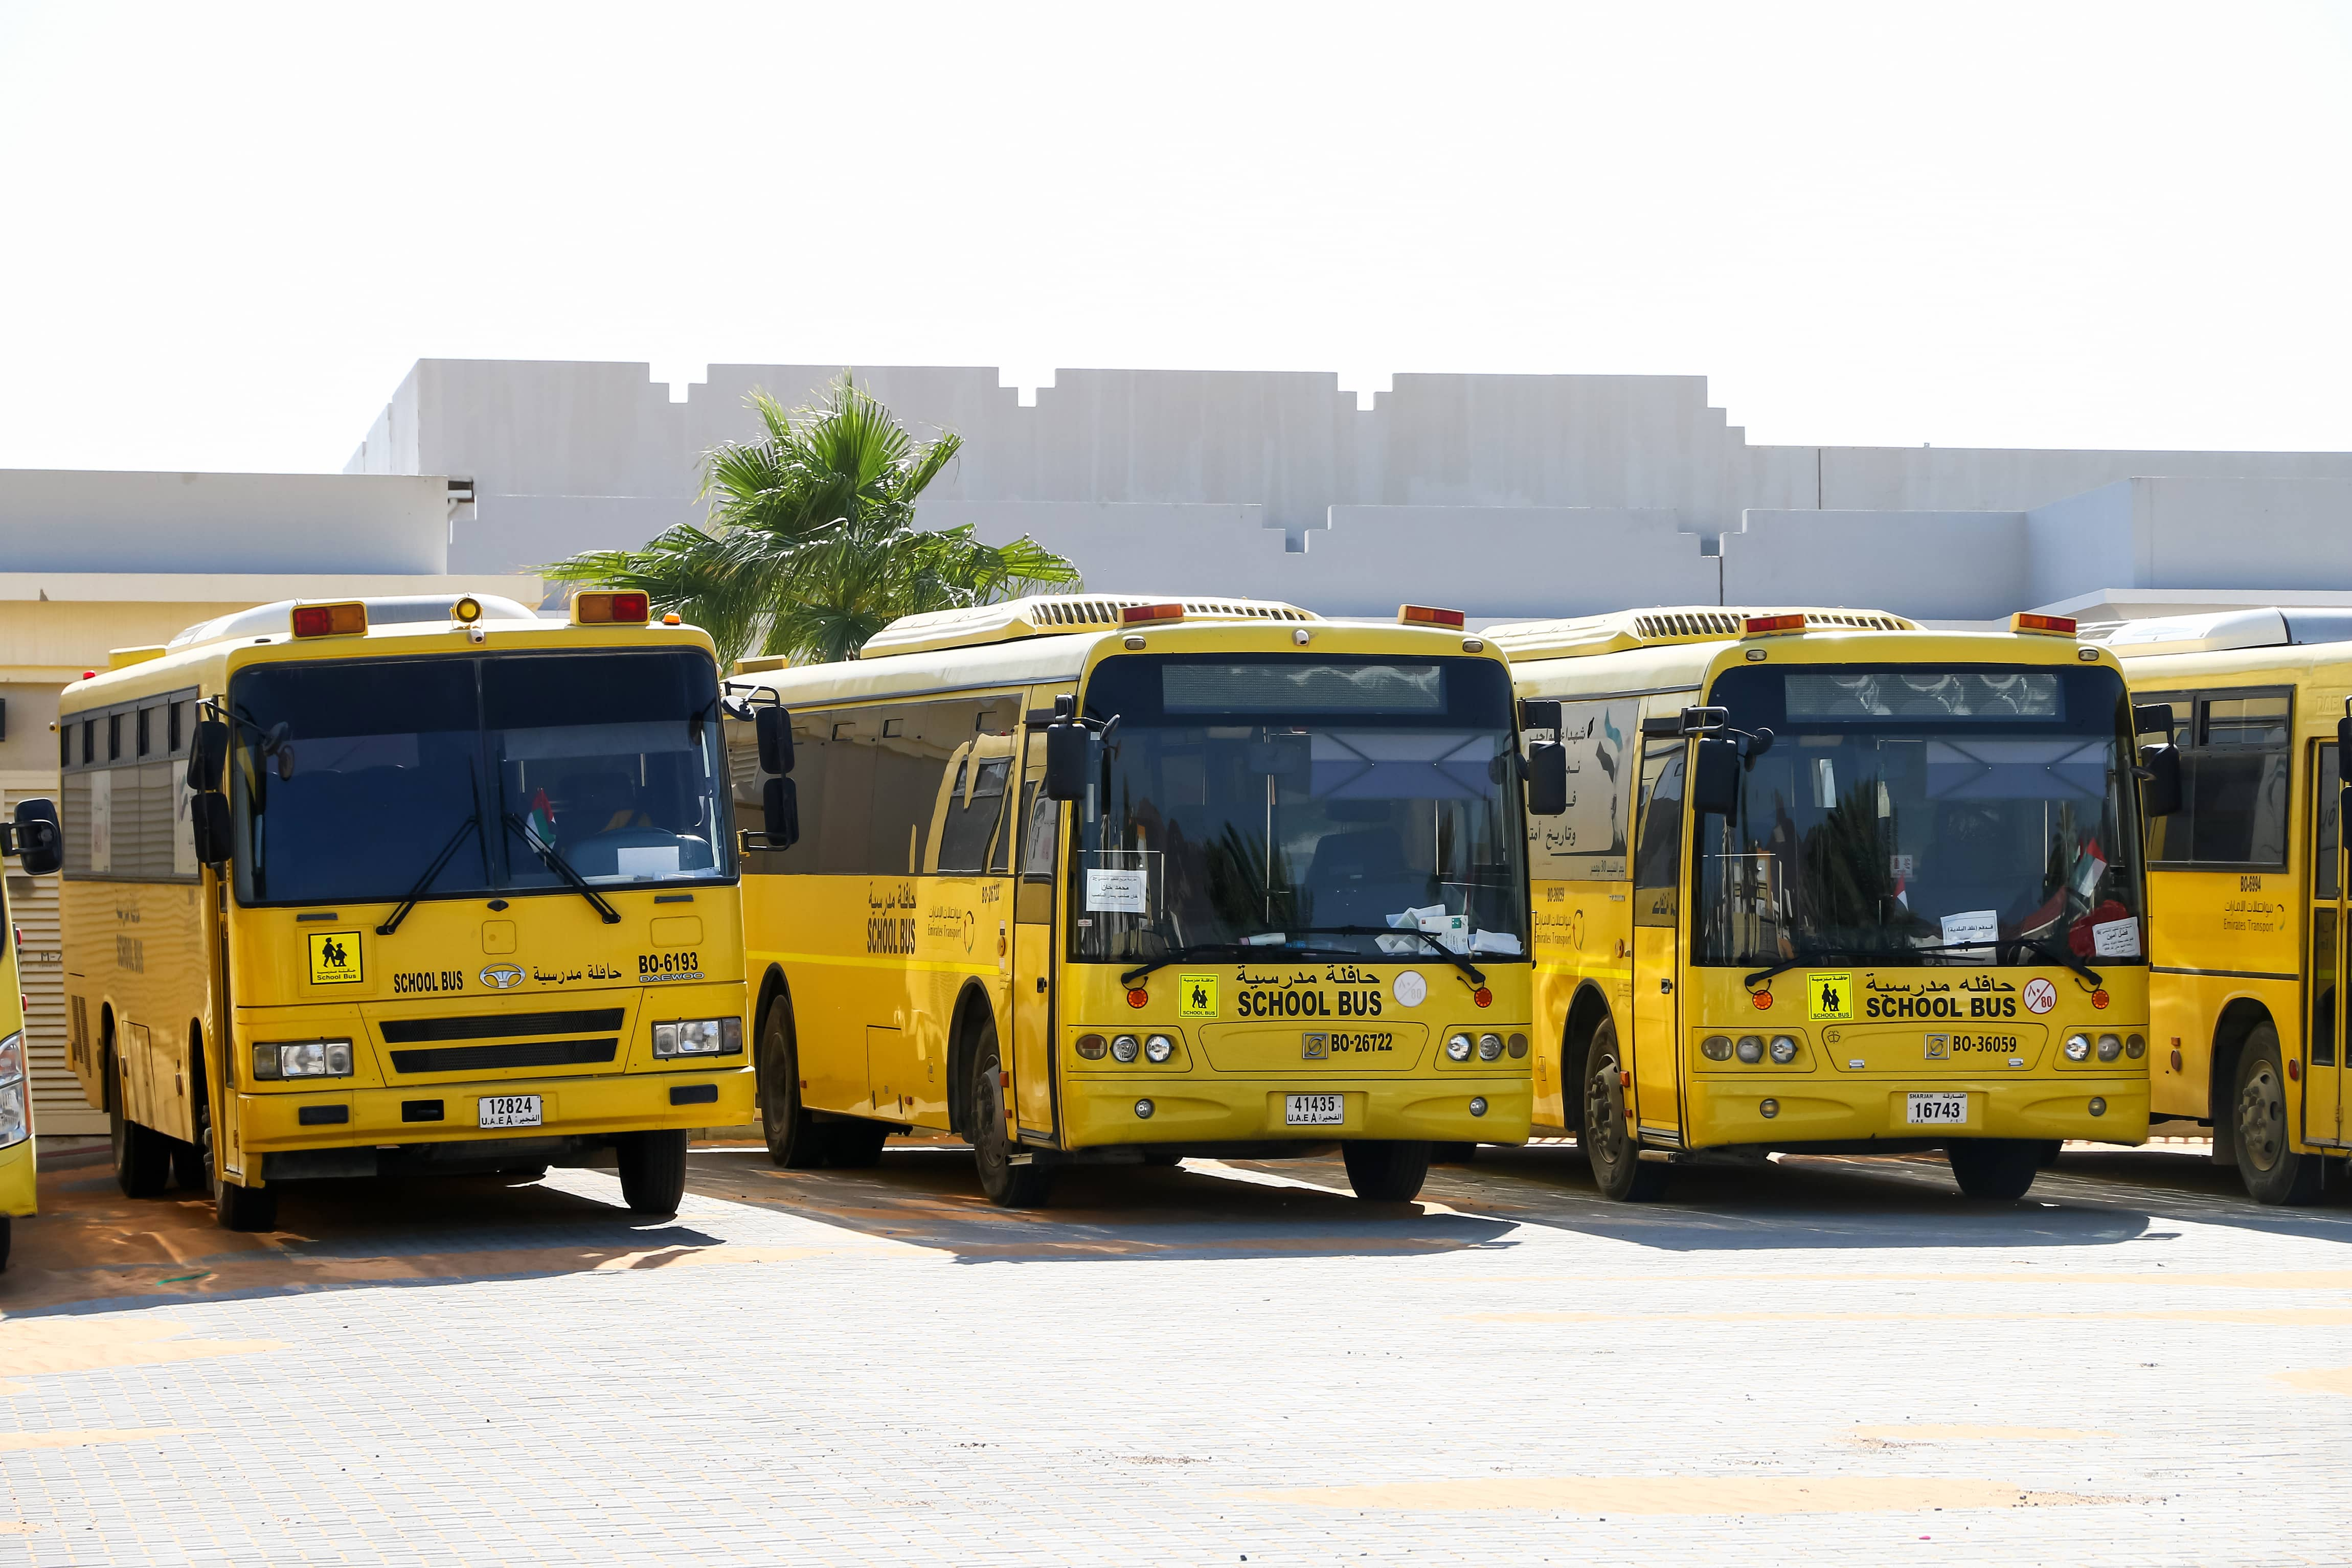 3 Yellow School Buses in the Middle East